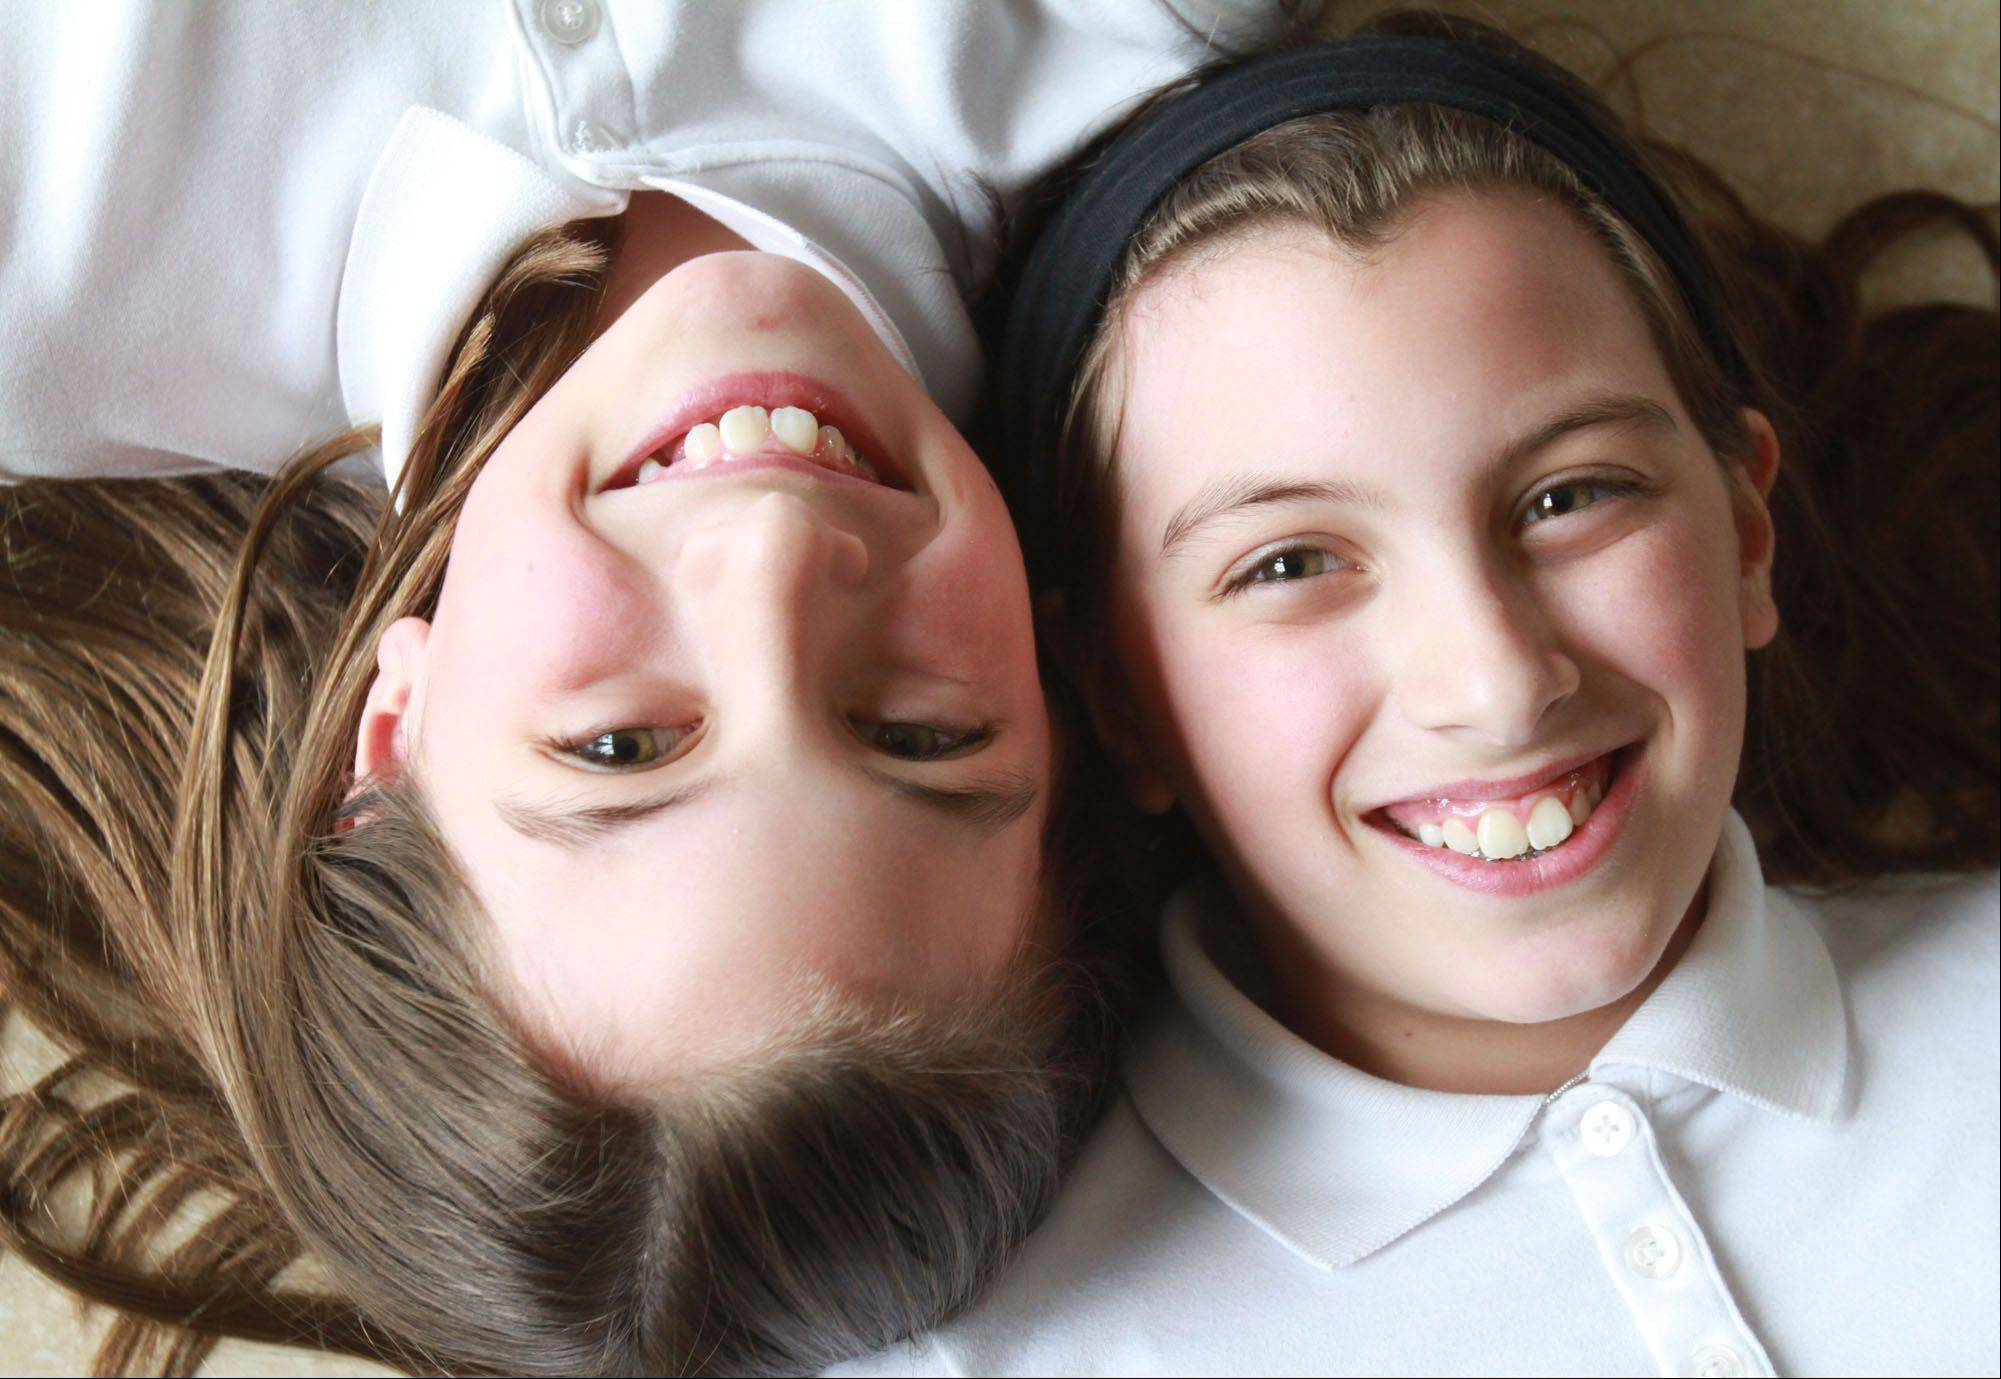 Gabriella, left, and Isabella Venturini.